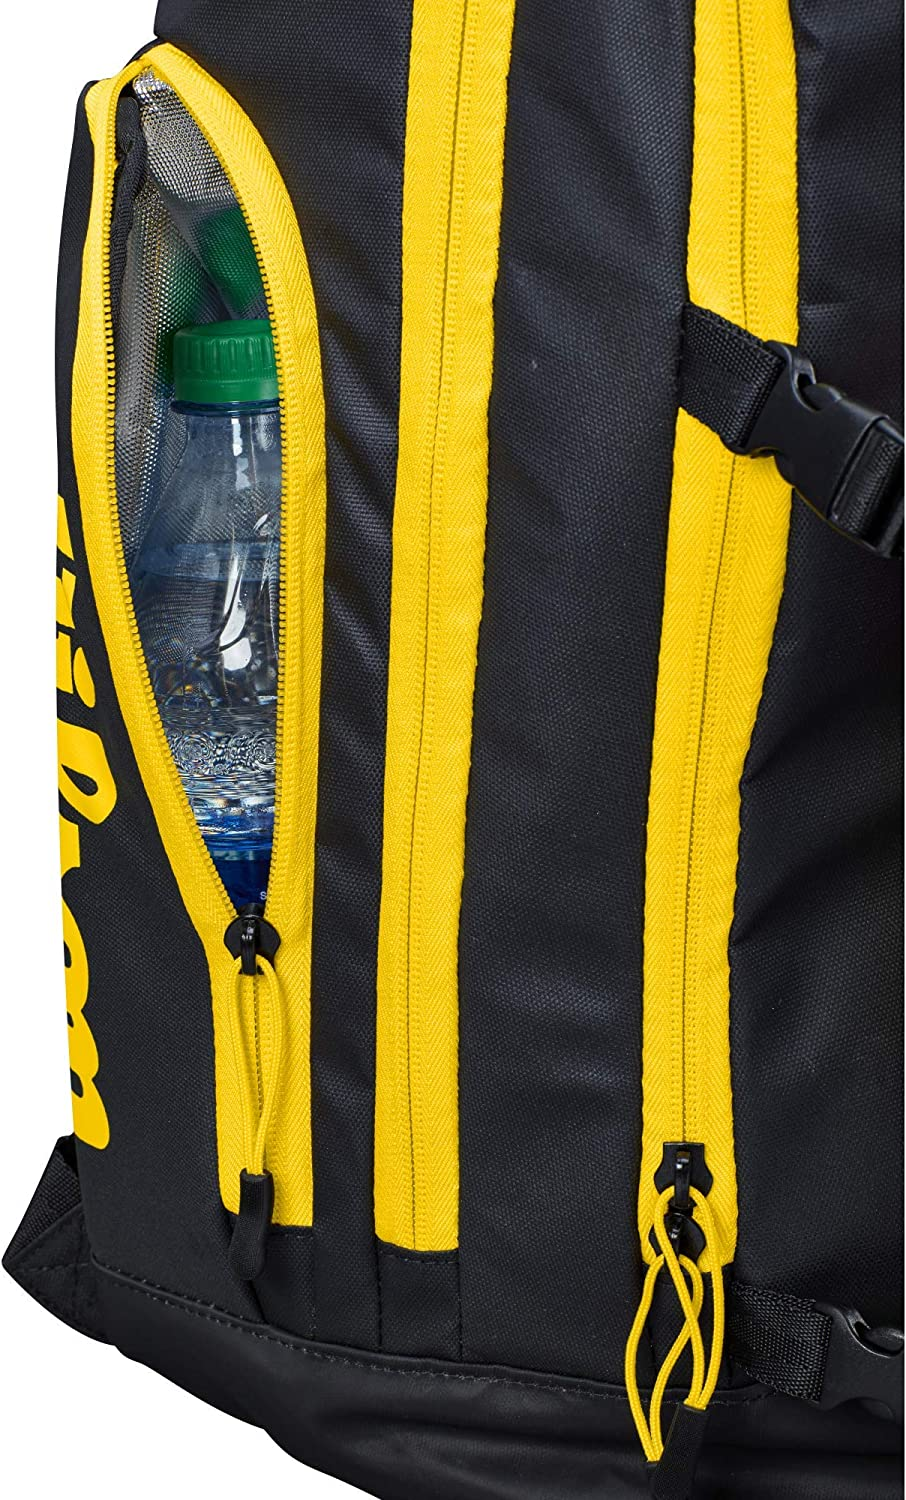 AVP WTH121190 Wilson Beach Volleyball Backpack Black//Yellow with Ball Holder and Cooling Compartment